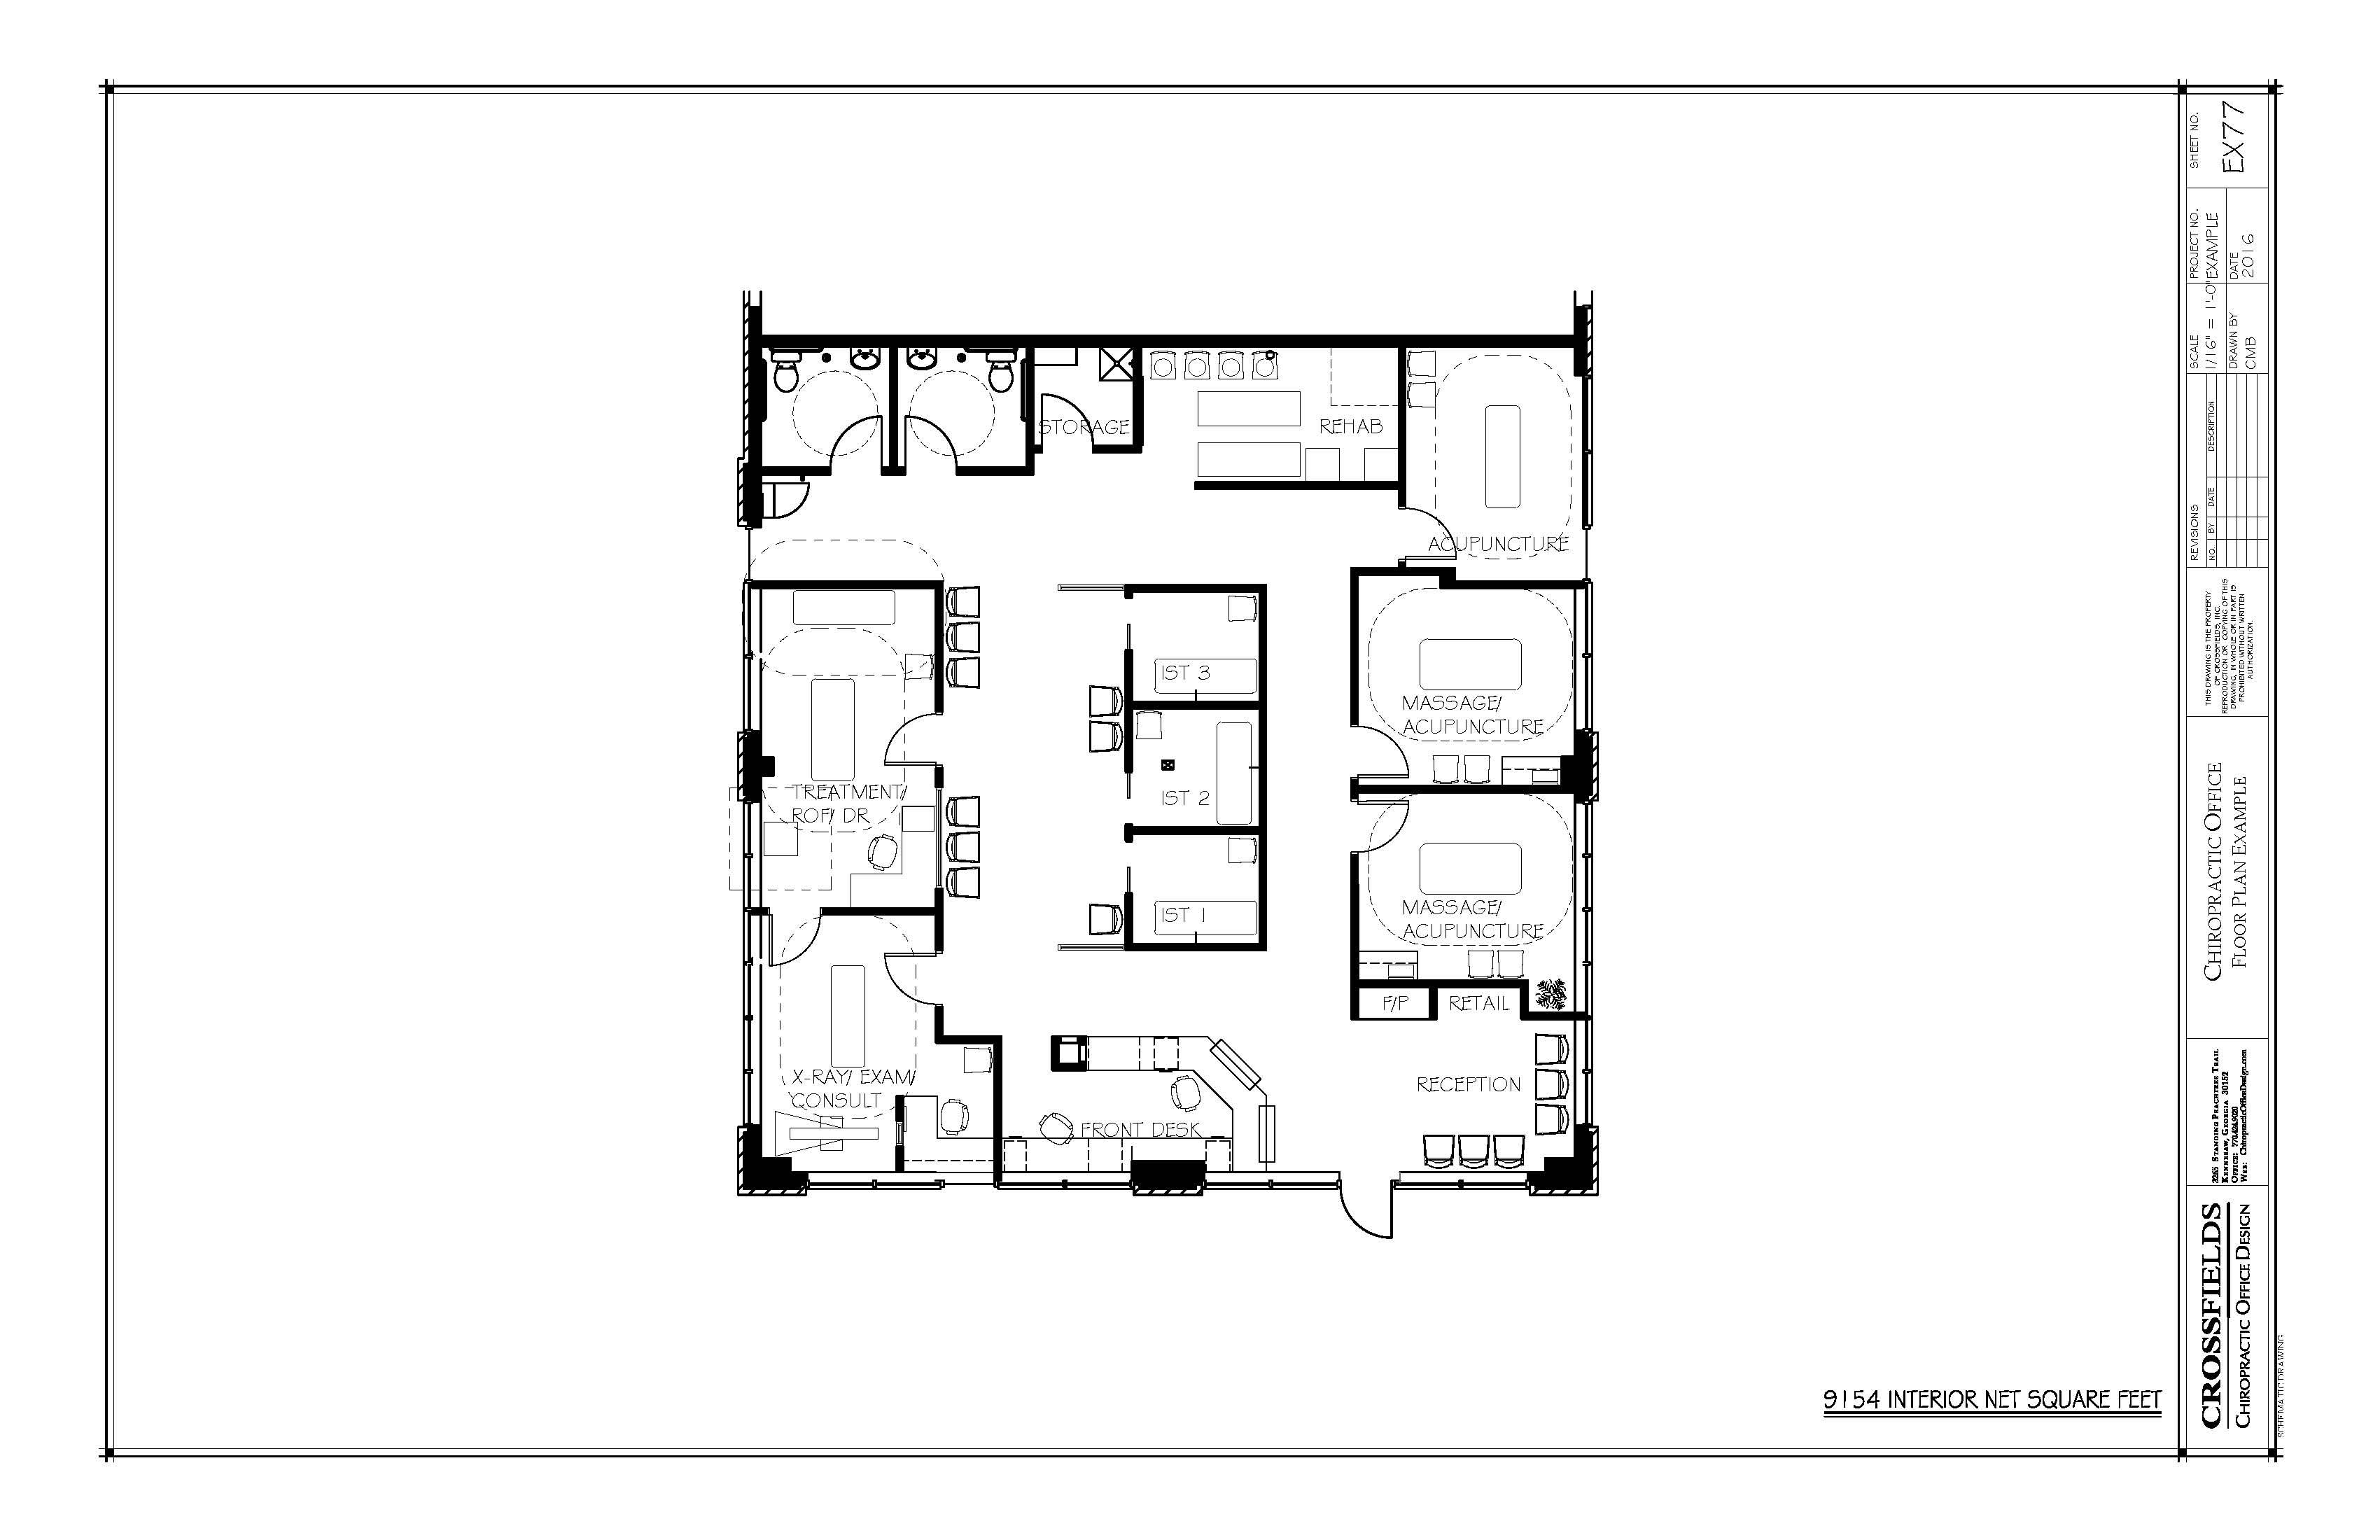 Example floor plan with closed adjusting x ray exam ist rehab massage acupuncture